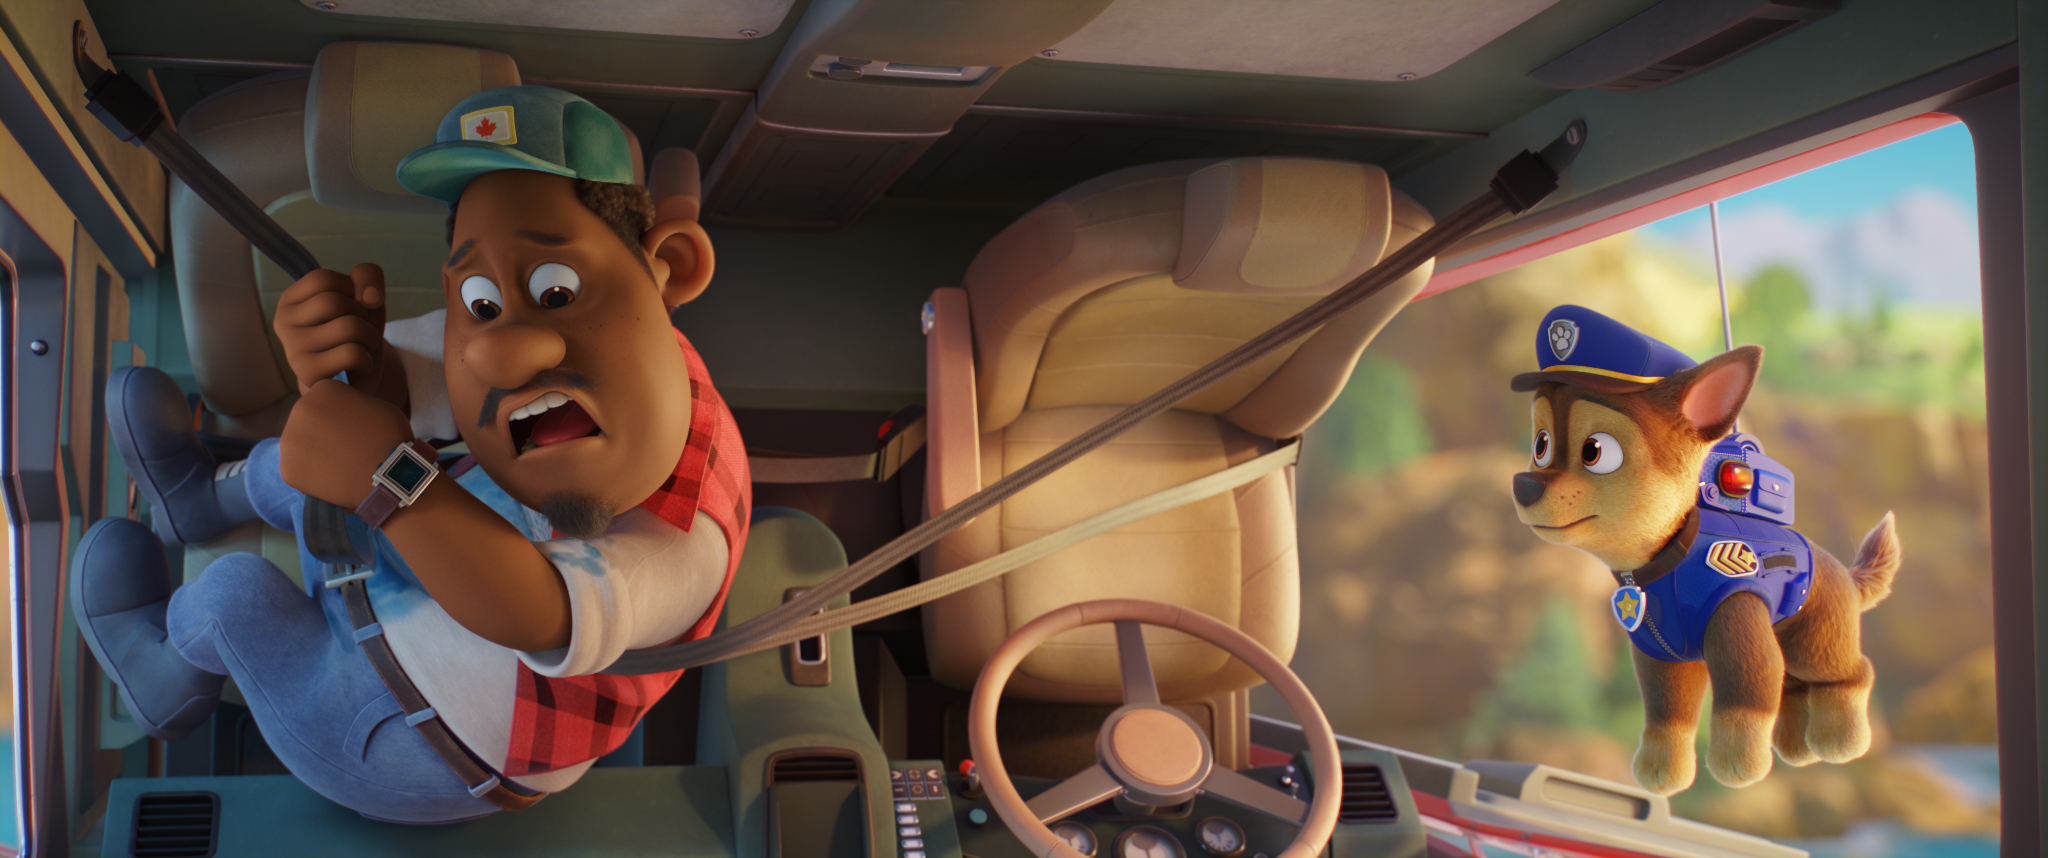 Gus (voiced by Tyler Perry) and Chase (voiced by Iain Armitage) in PAW PATROL: THE MOVIE from Paramount Pictures. Photo Credit: Courtesy of Spin Master.